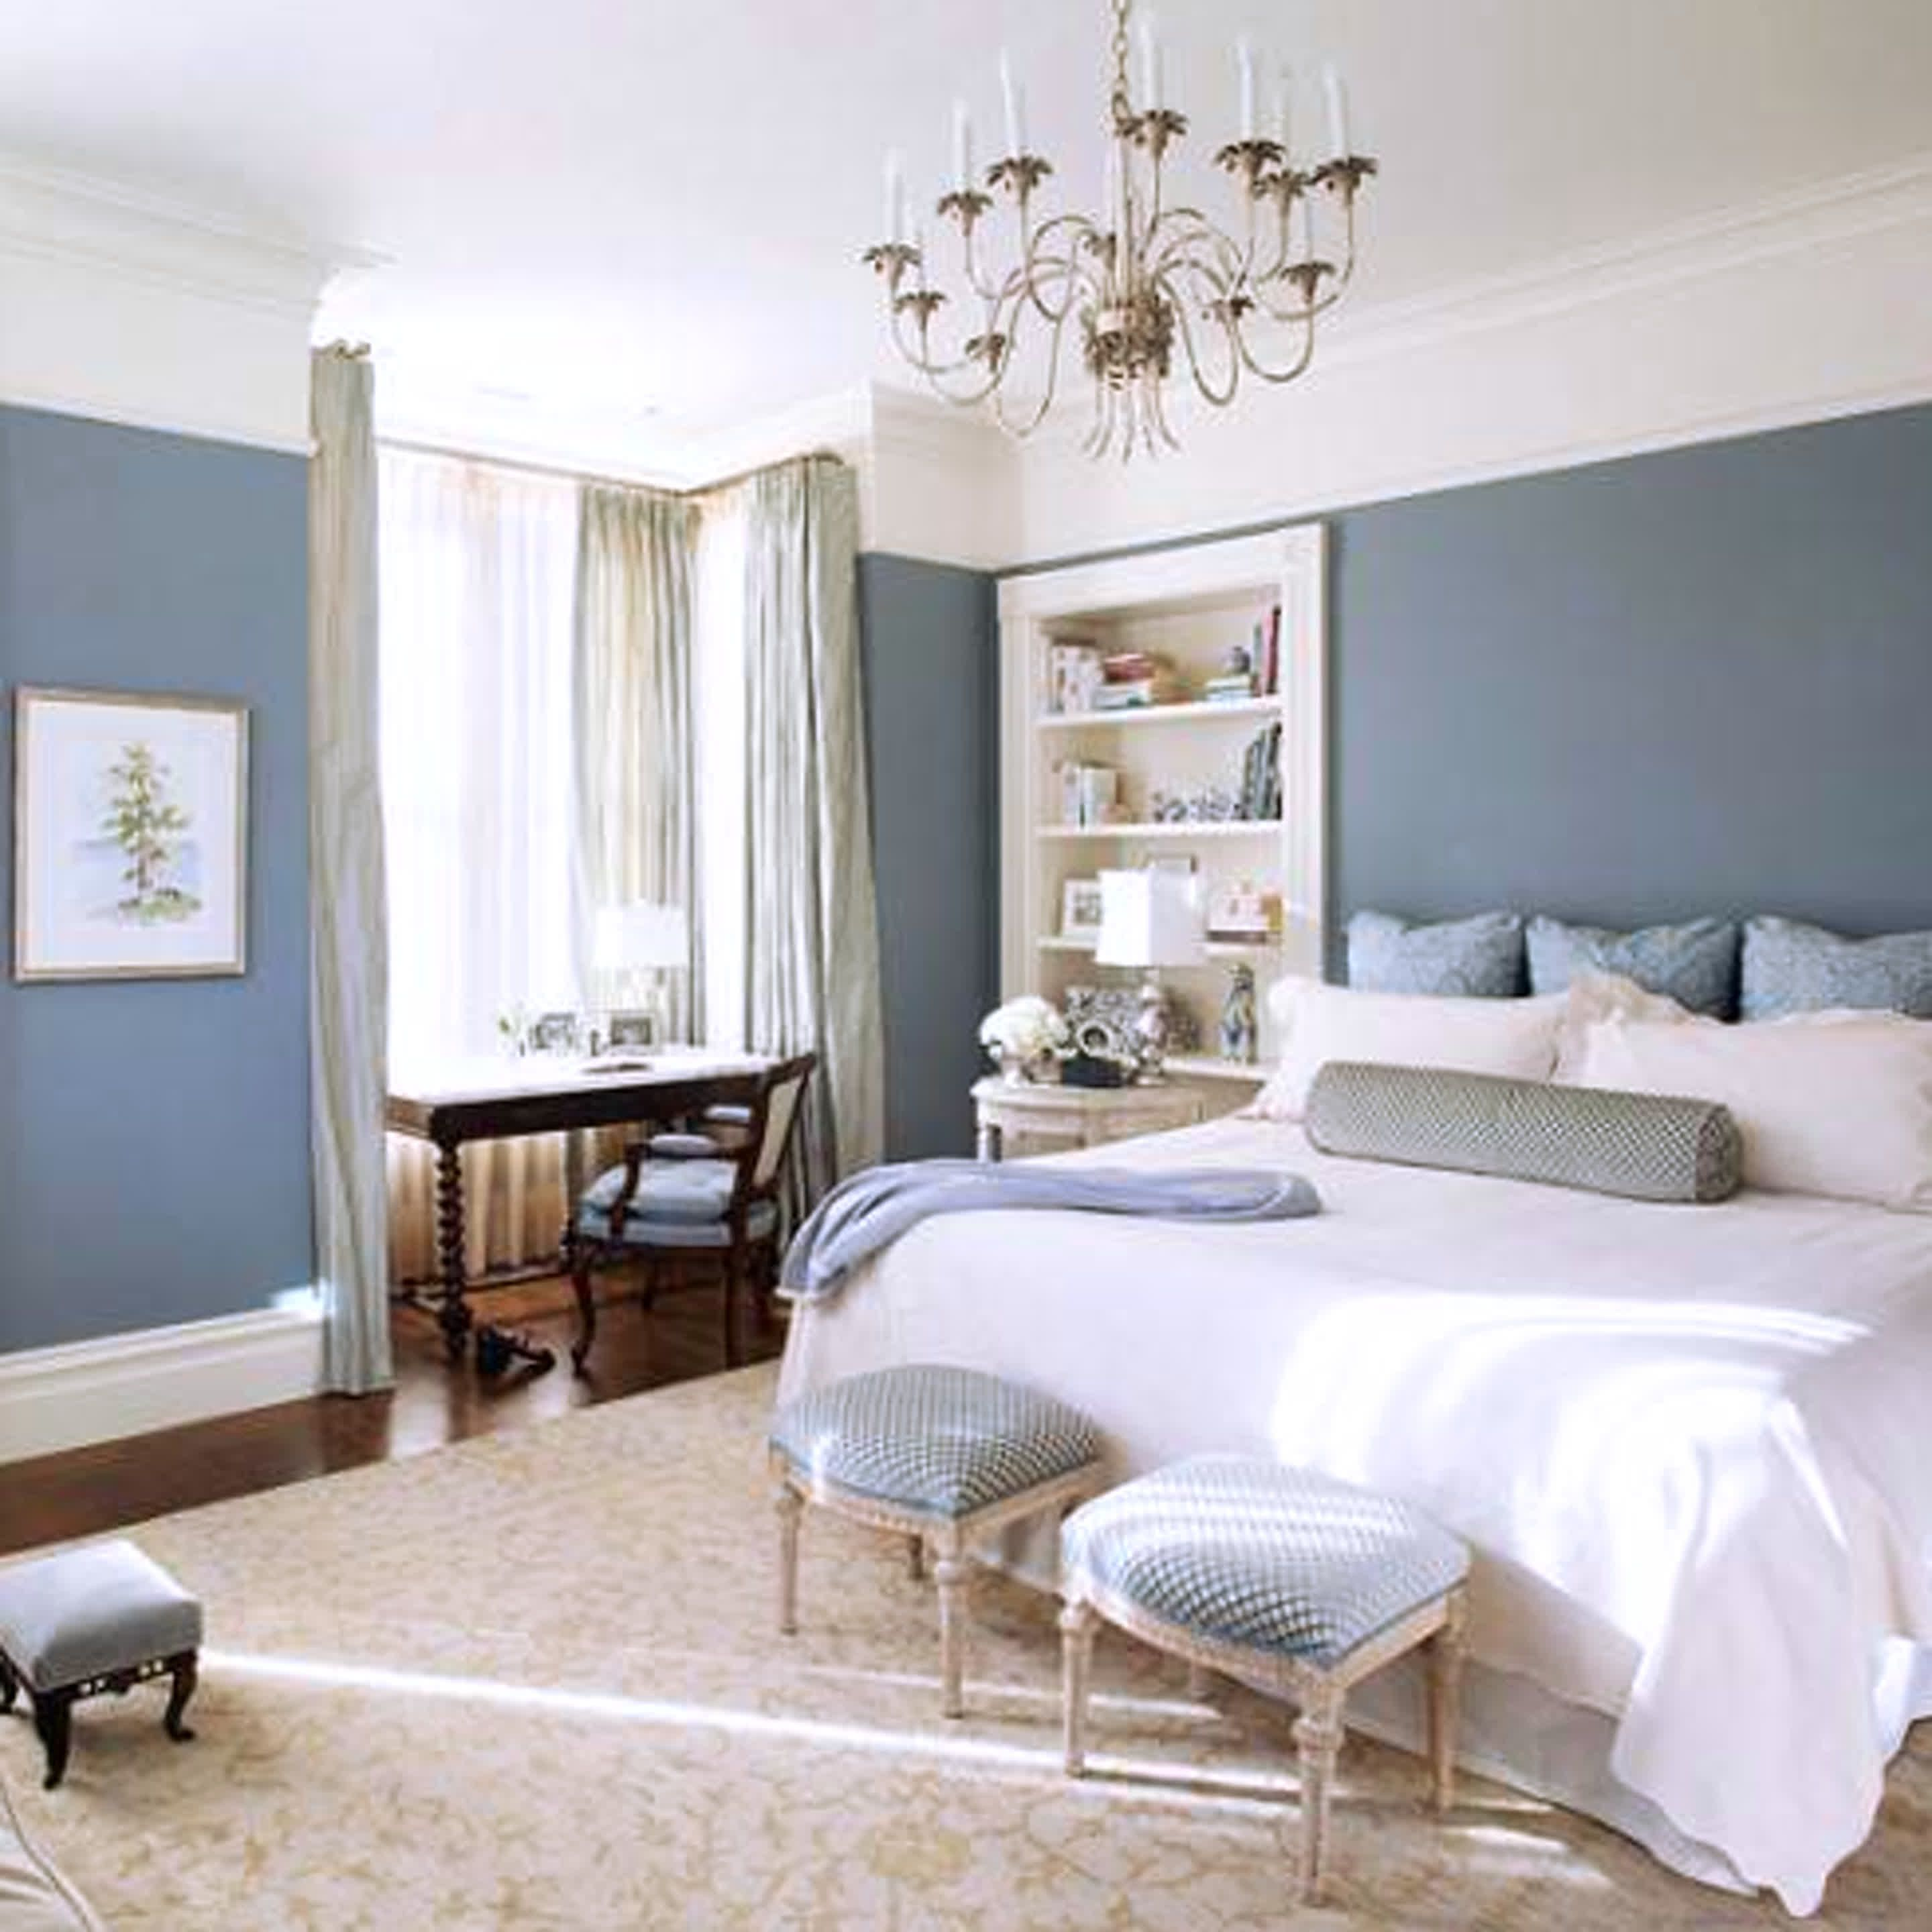 Nice Bedroom Chairs Blue Accent Wall Bedroom Bedroom Furniture King Size Childrens Bedroom Art: Bedroom : Peroconlagr Blue Accent Wall Bedroom Ideas Plus